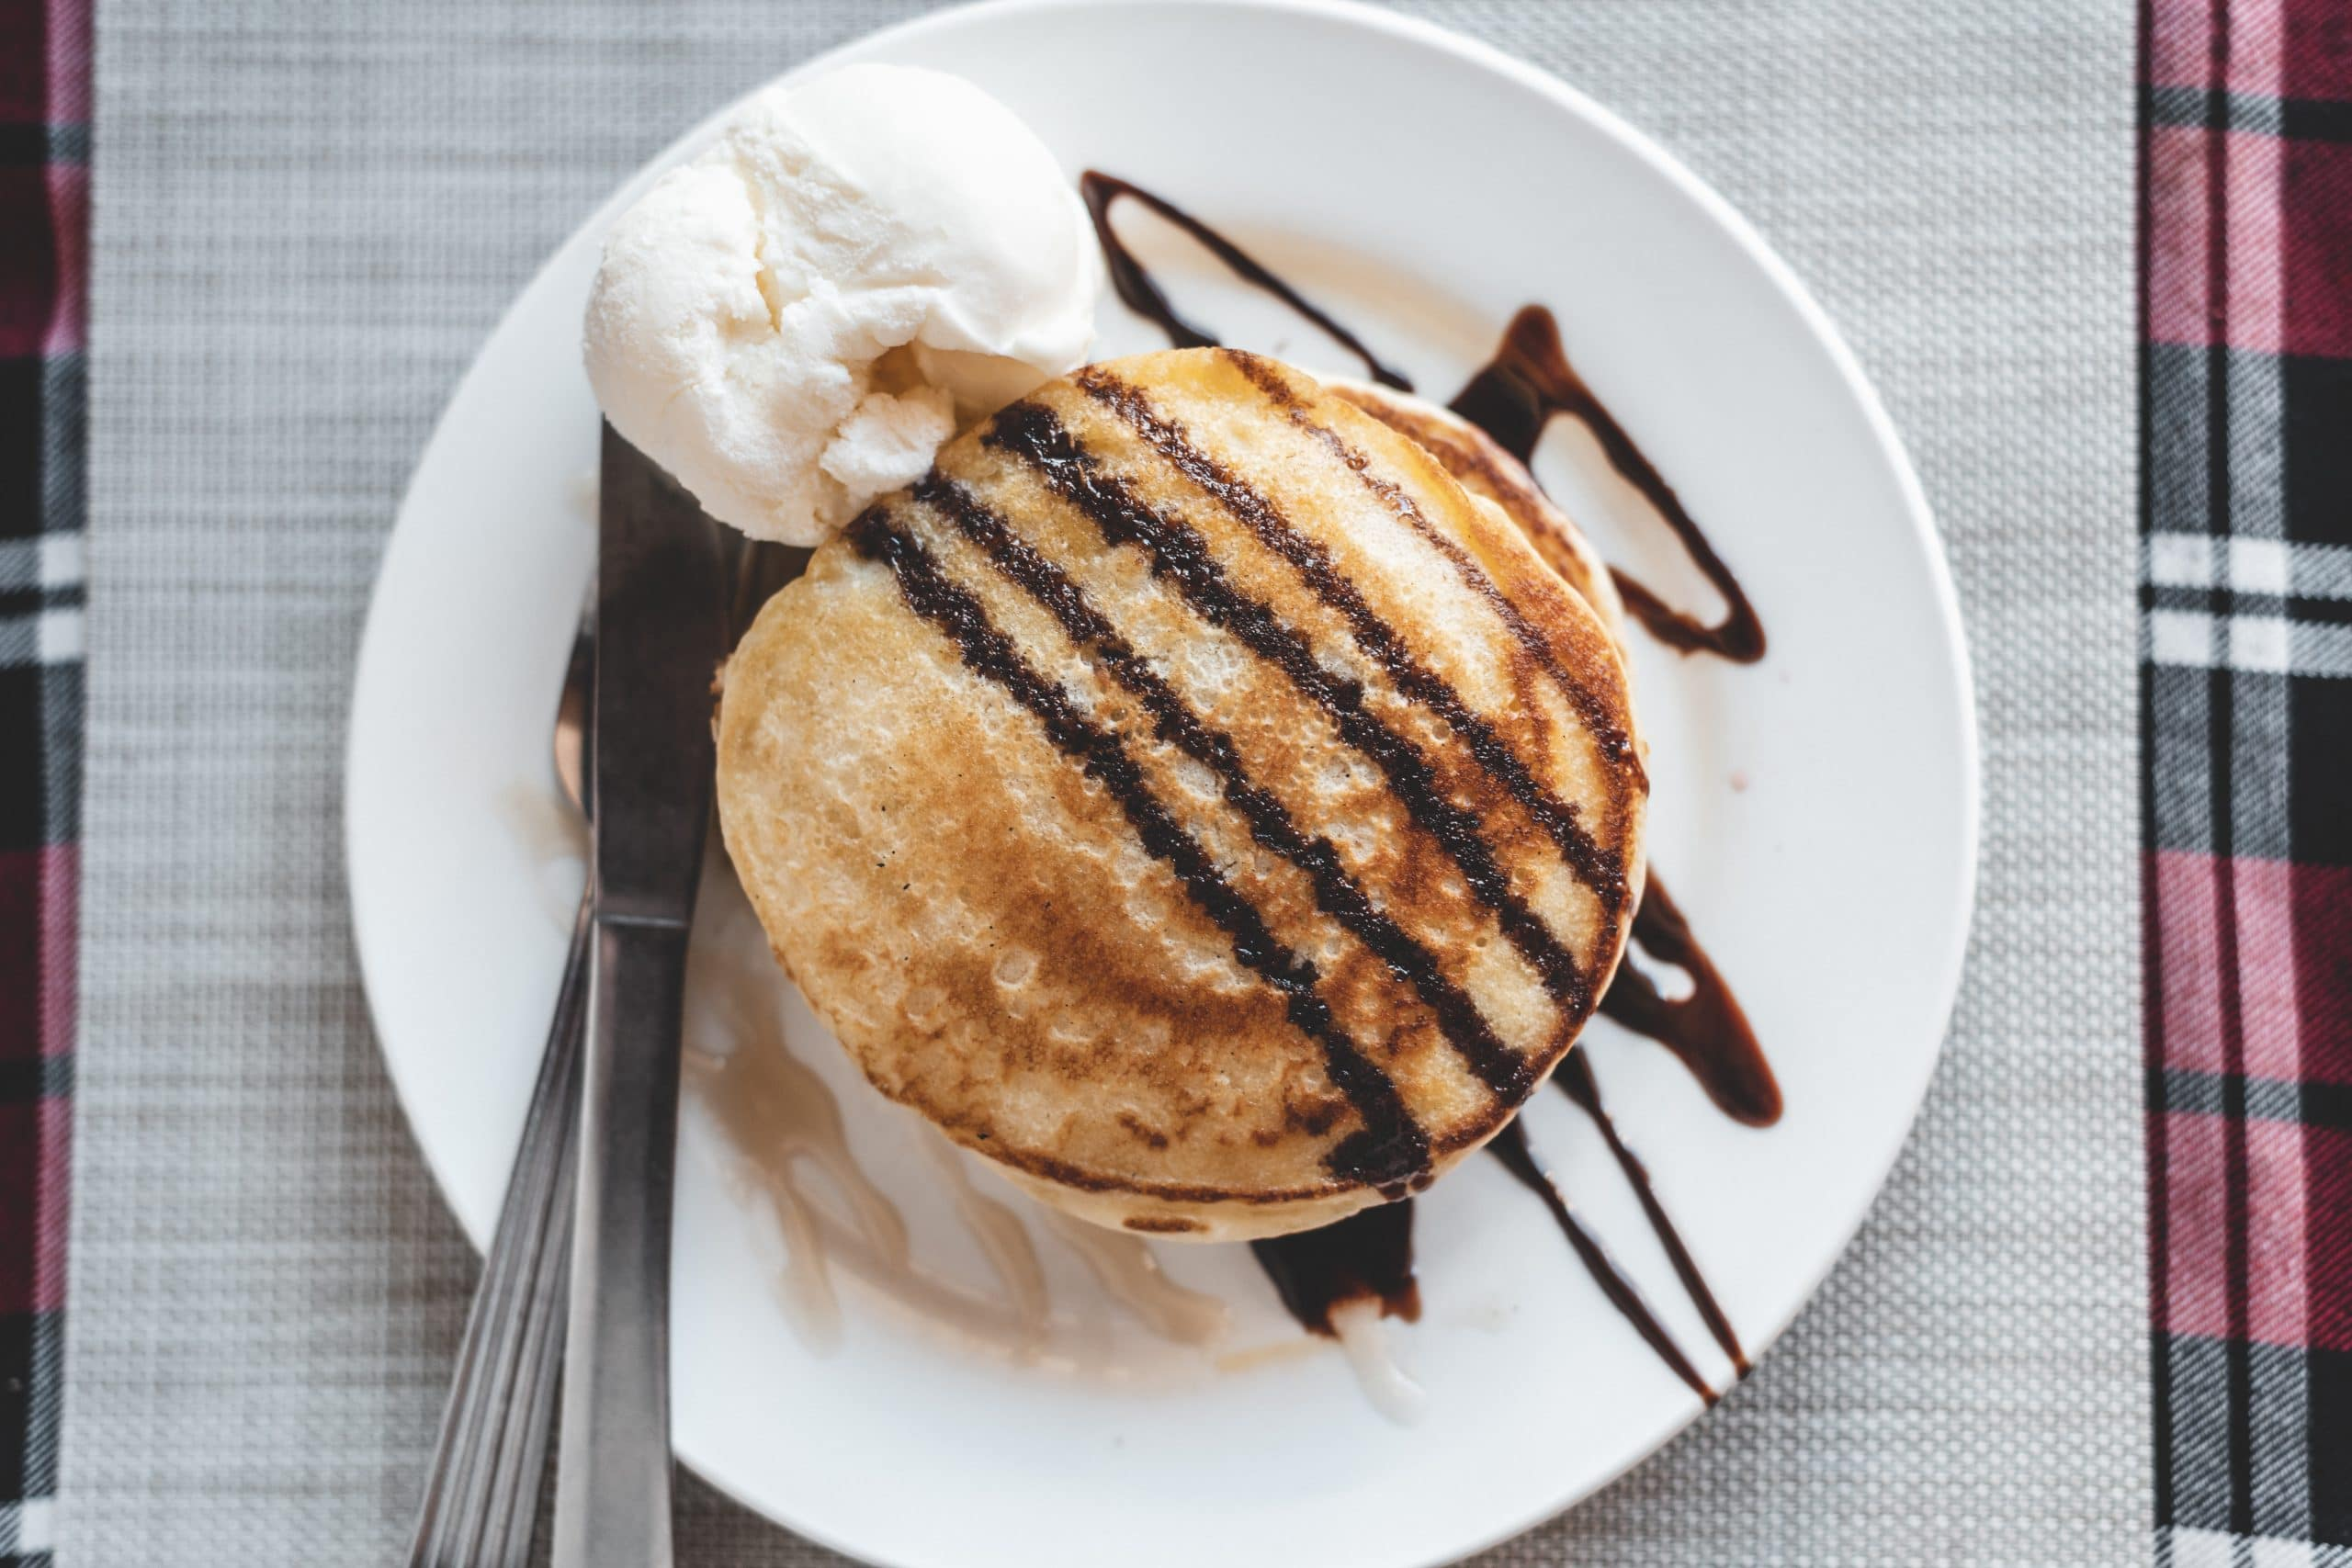 Pancakes topped with honey and chocolate with vanilla ice cream.